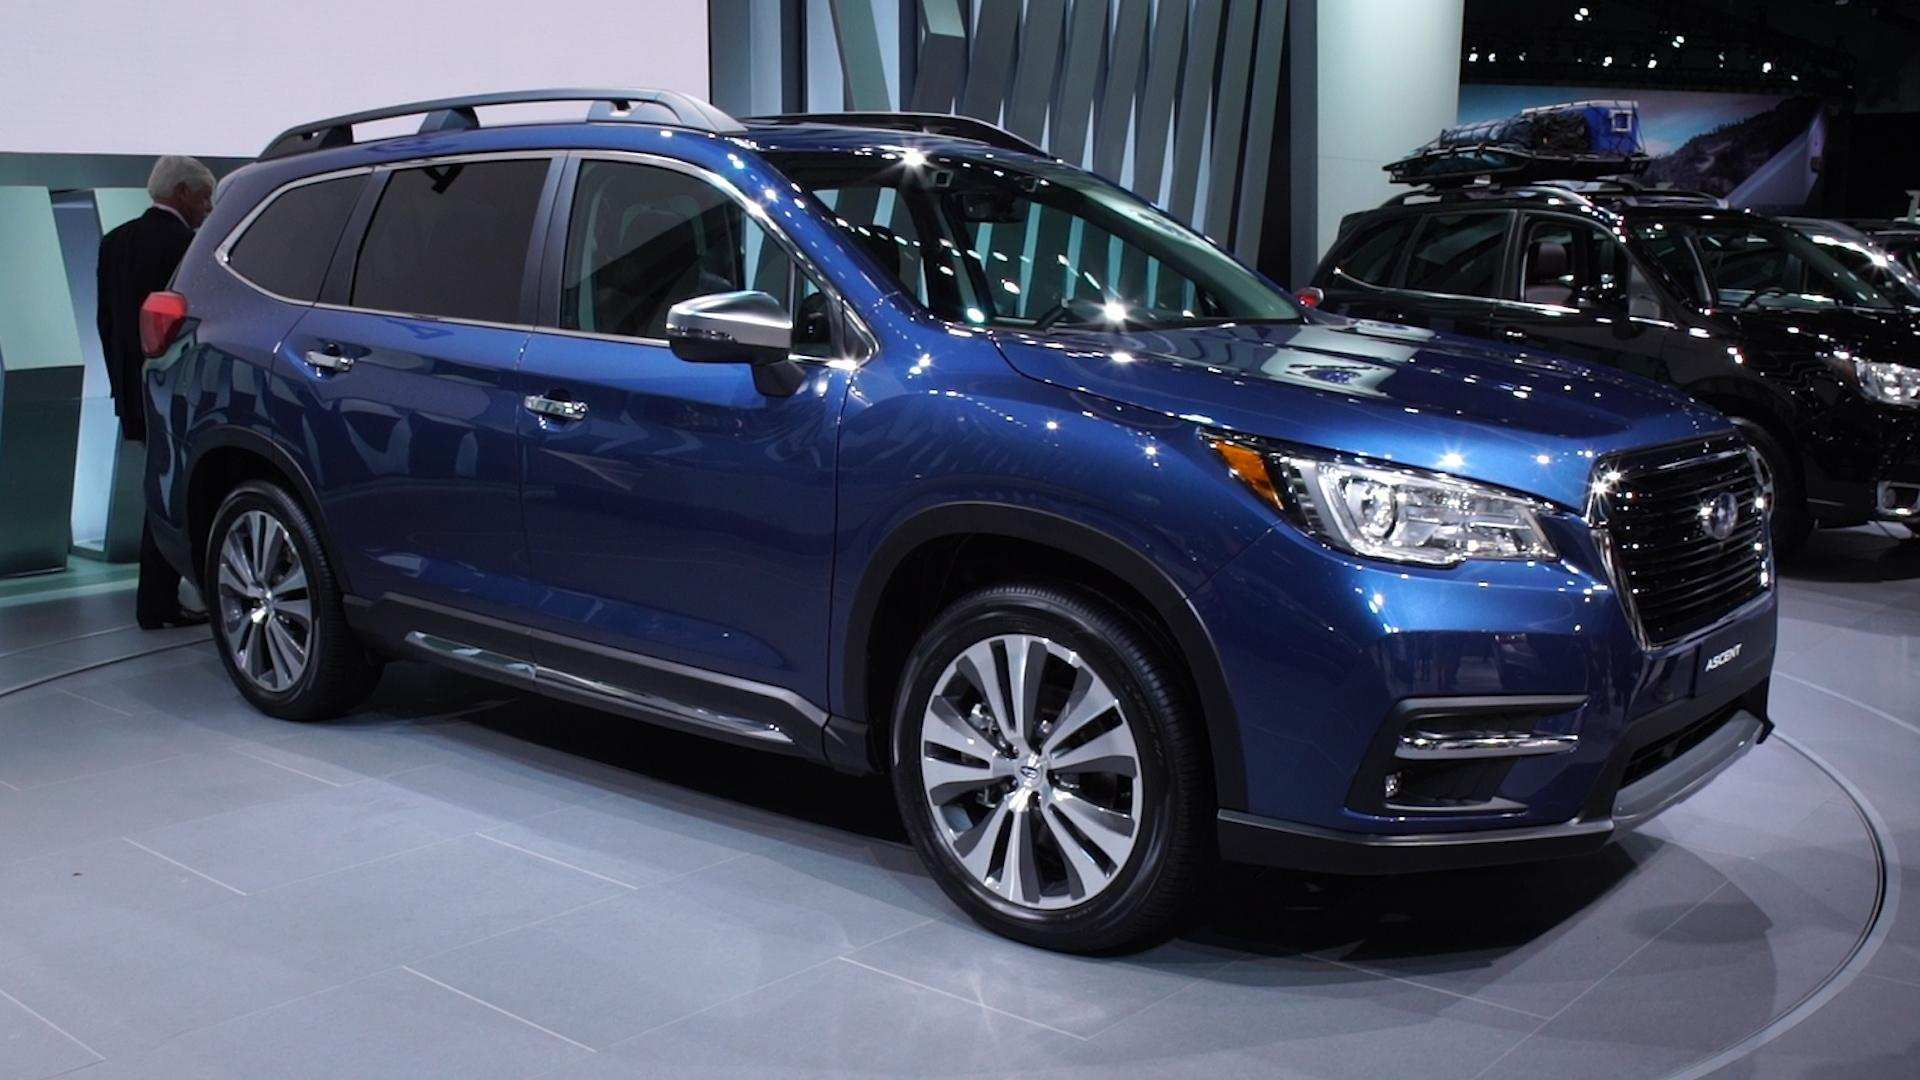 98 Best Review 2019 Subaru Ascent Mpg Overview with 2019 Subaru Ascent Mpg